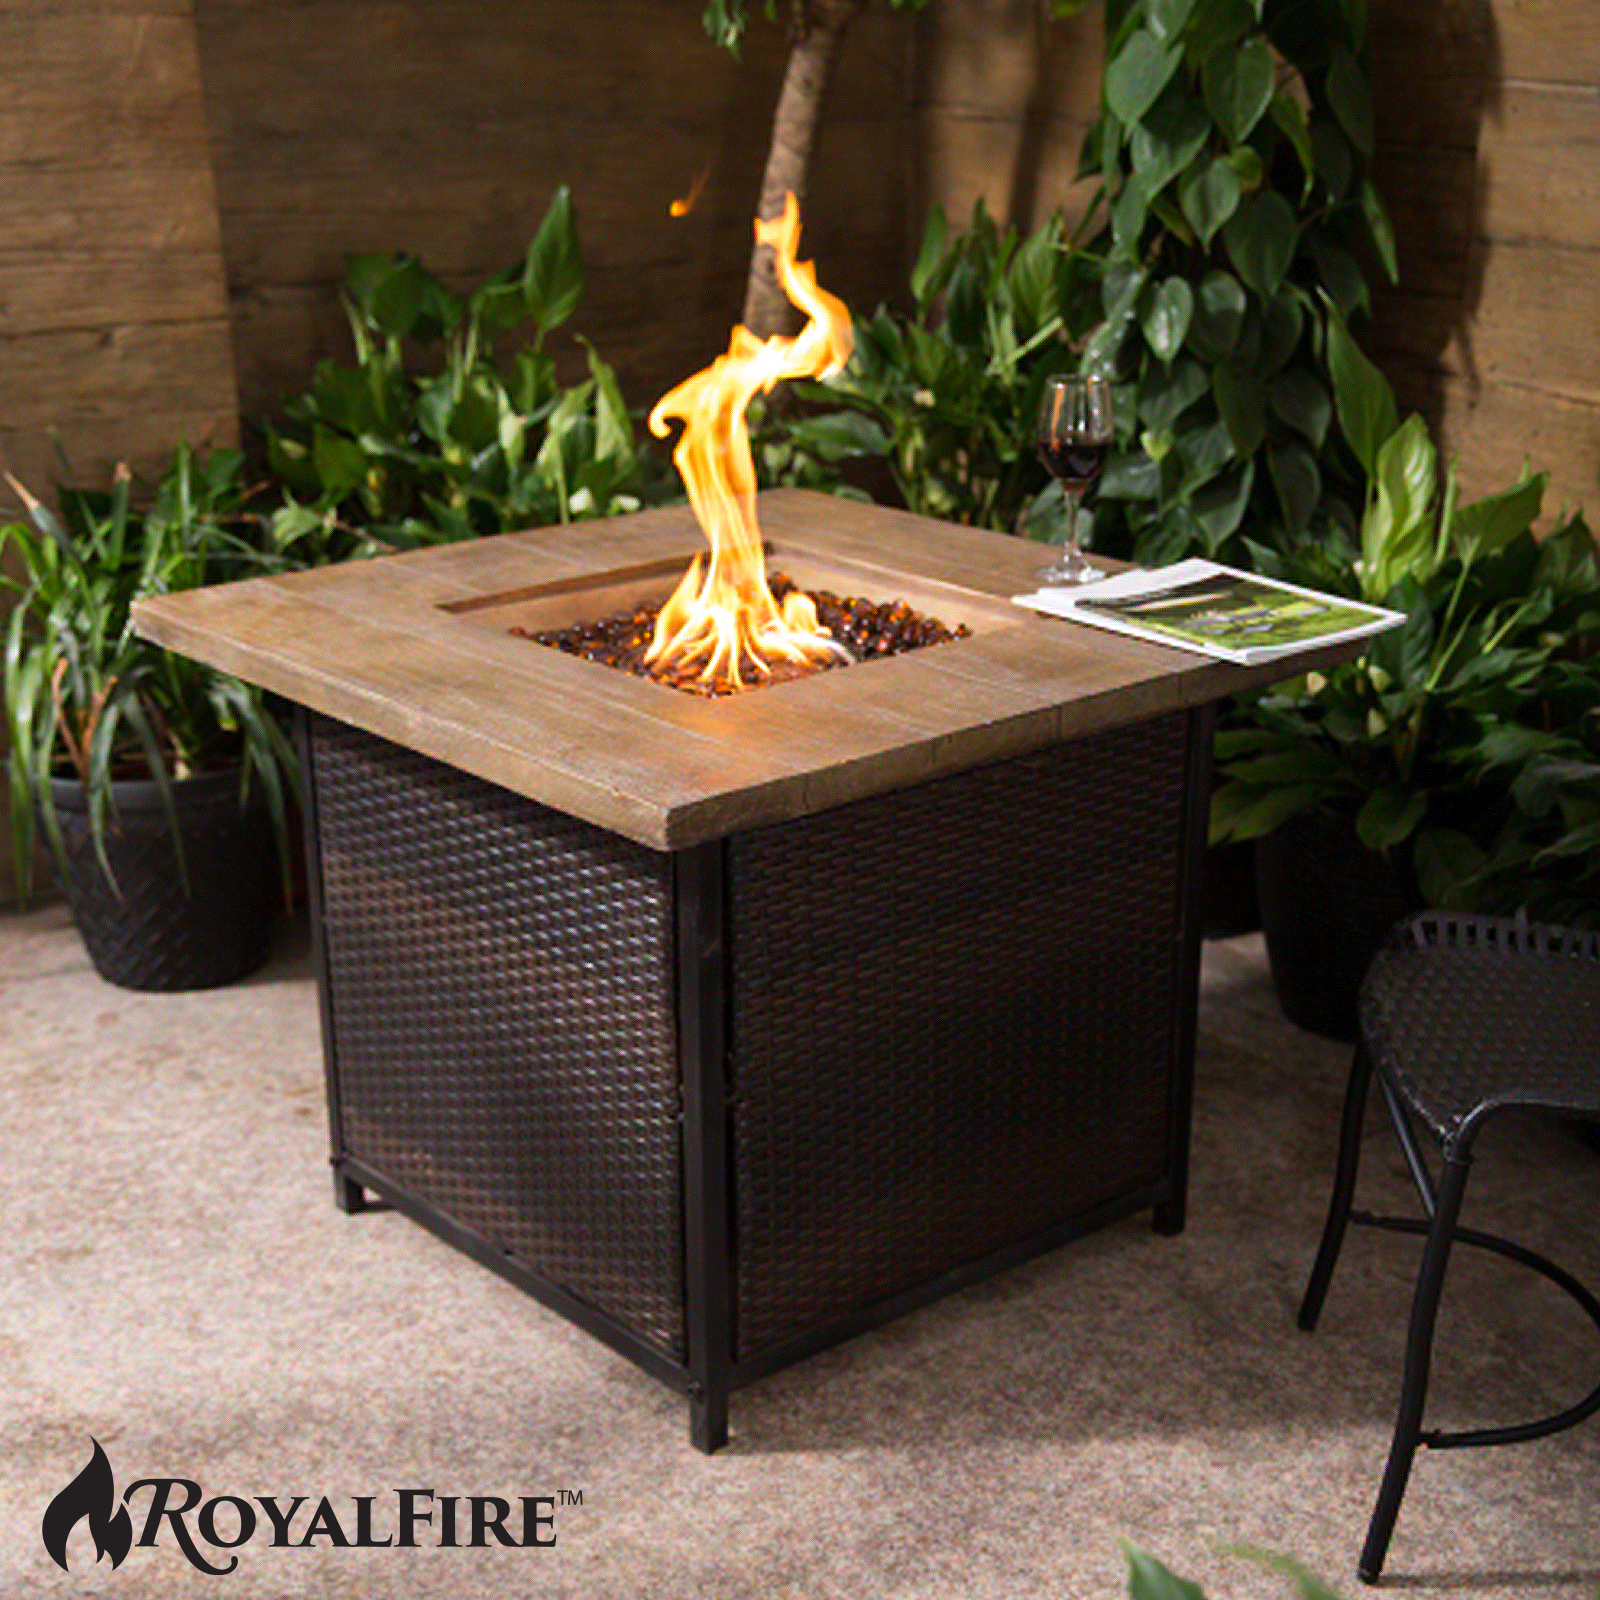 Outdoor Garden Firepit Royal Fire Square Fire Pit Gas